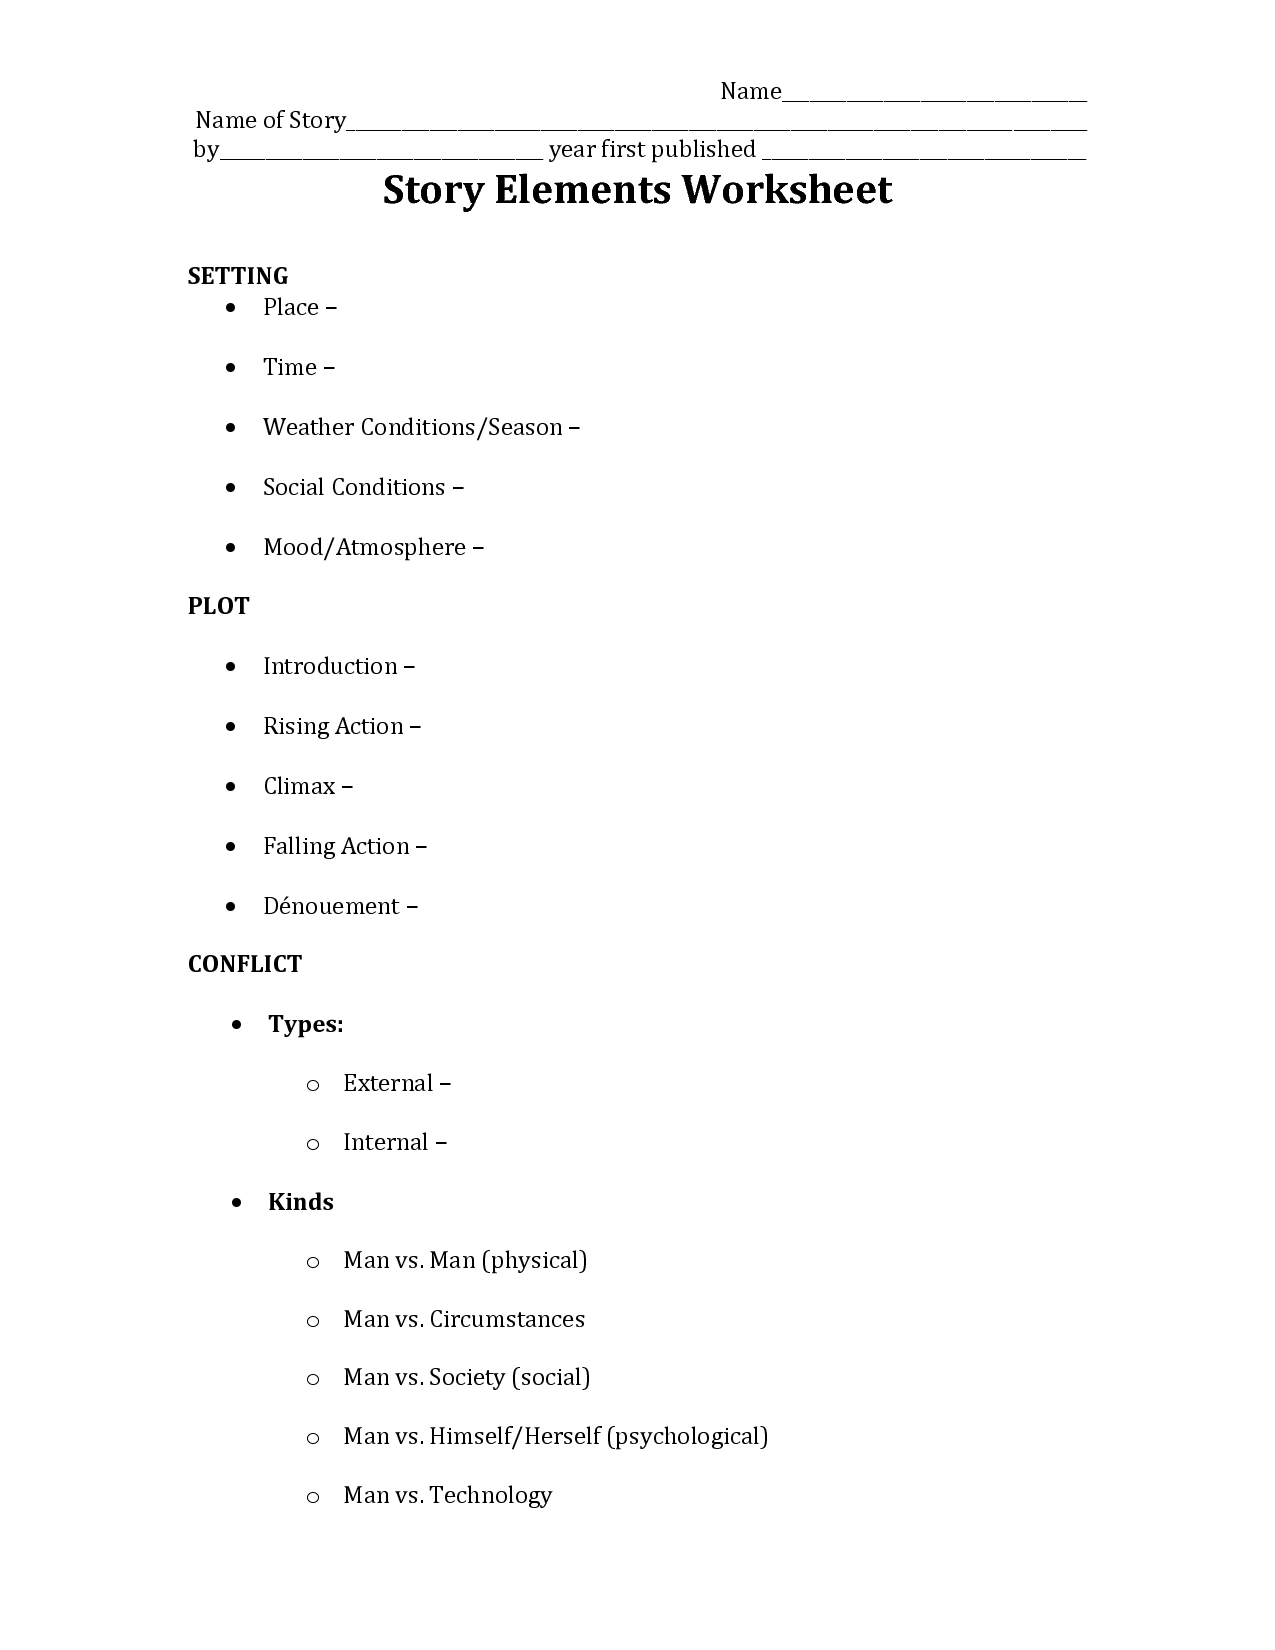 worksheet Elements Of A Story Worksheet 78 best images about characters setting plot on pinterest graphic organizers lesson plans and common cores